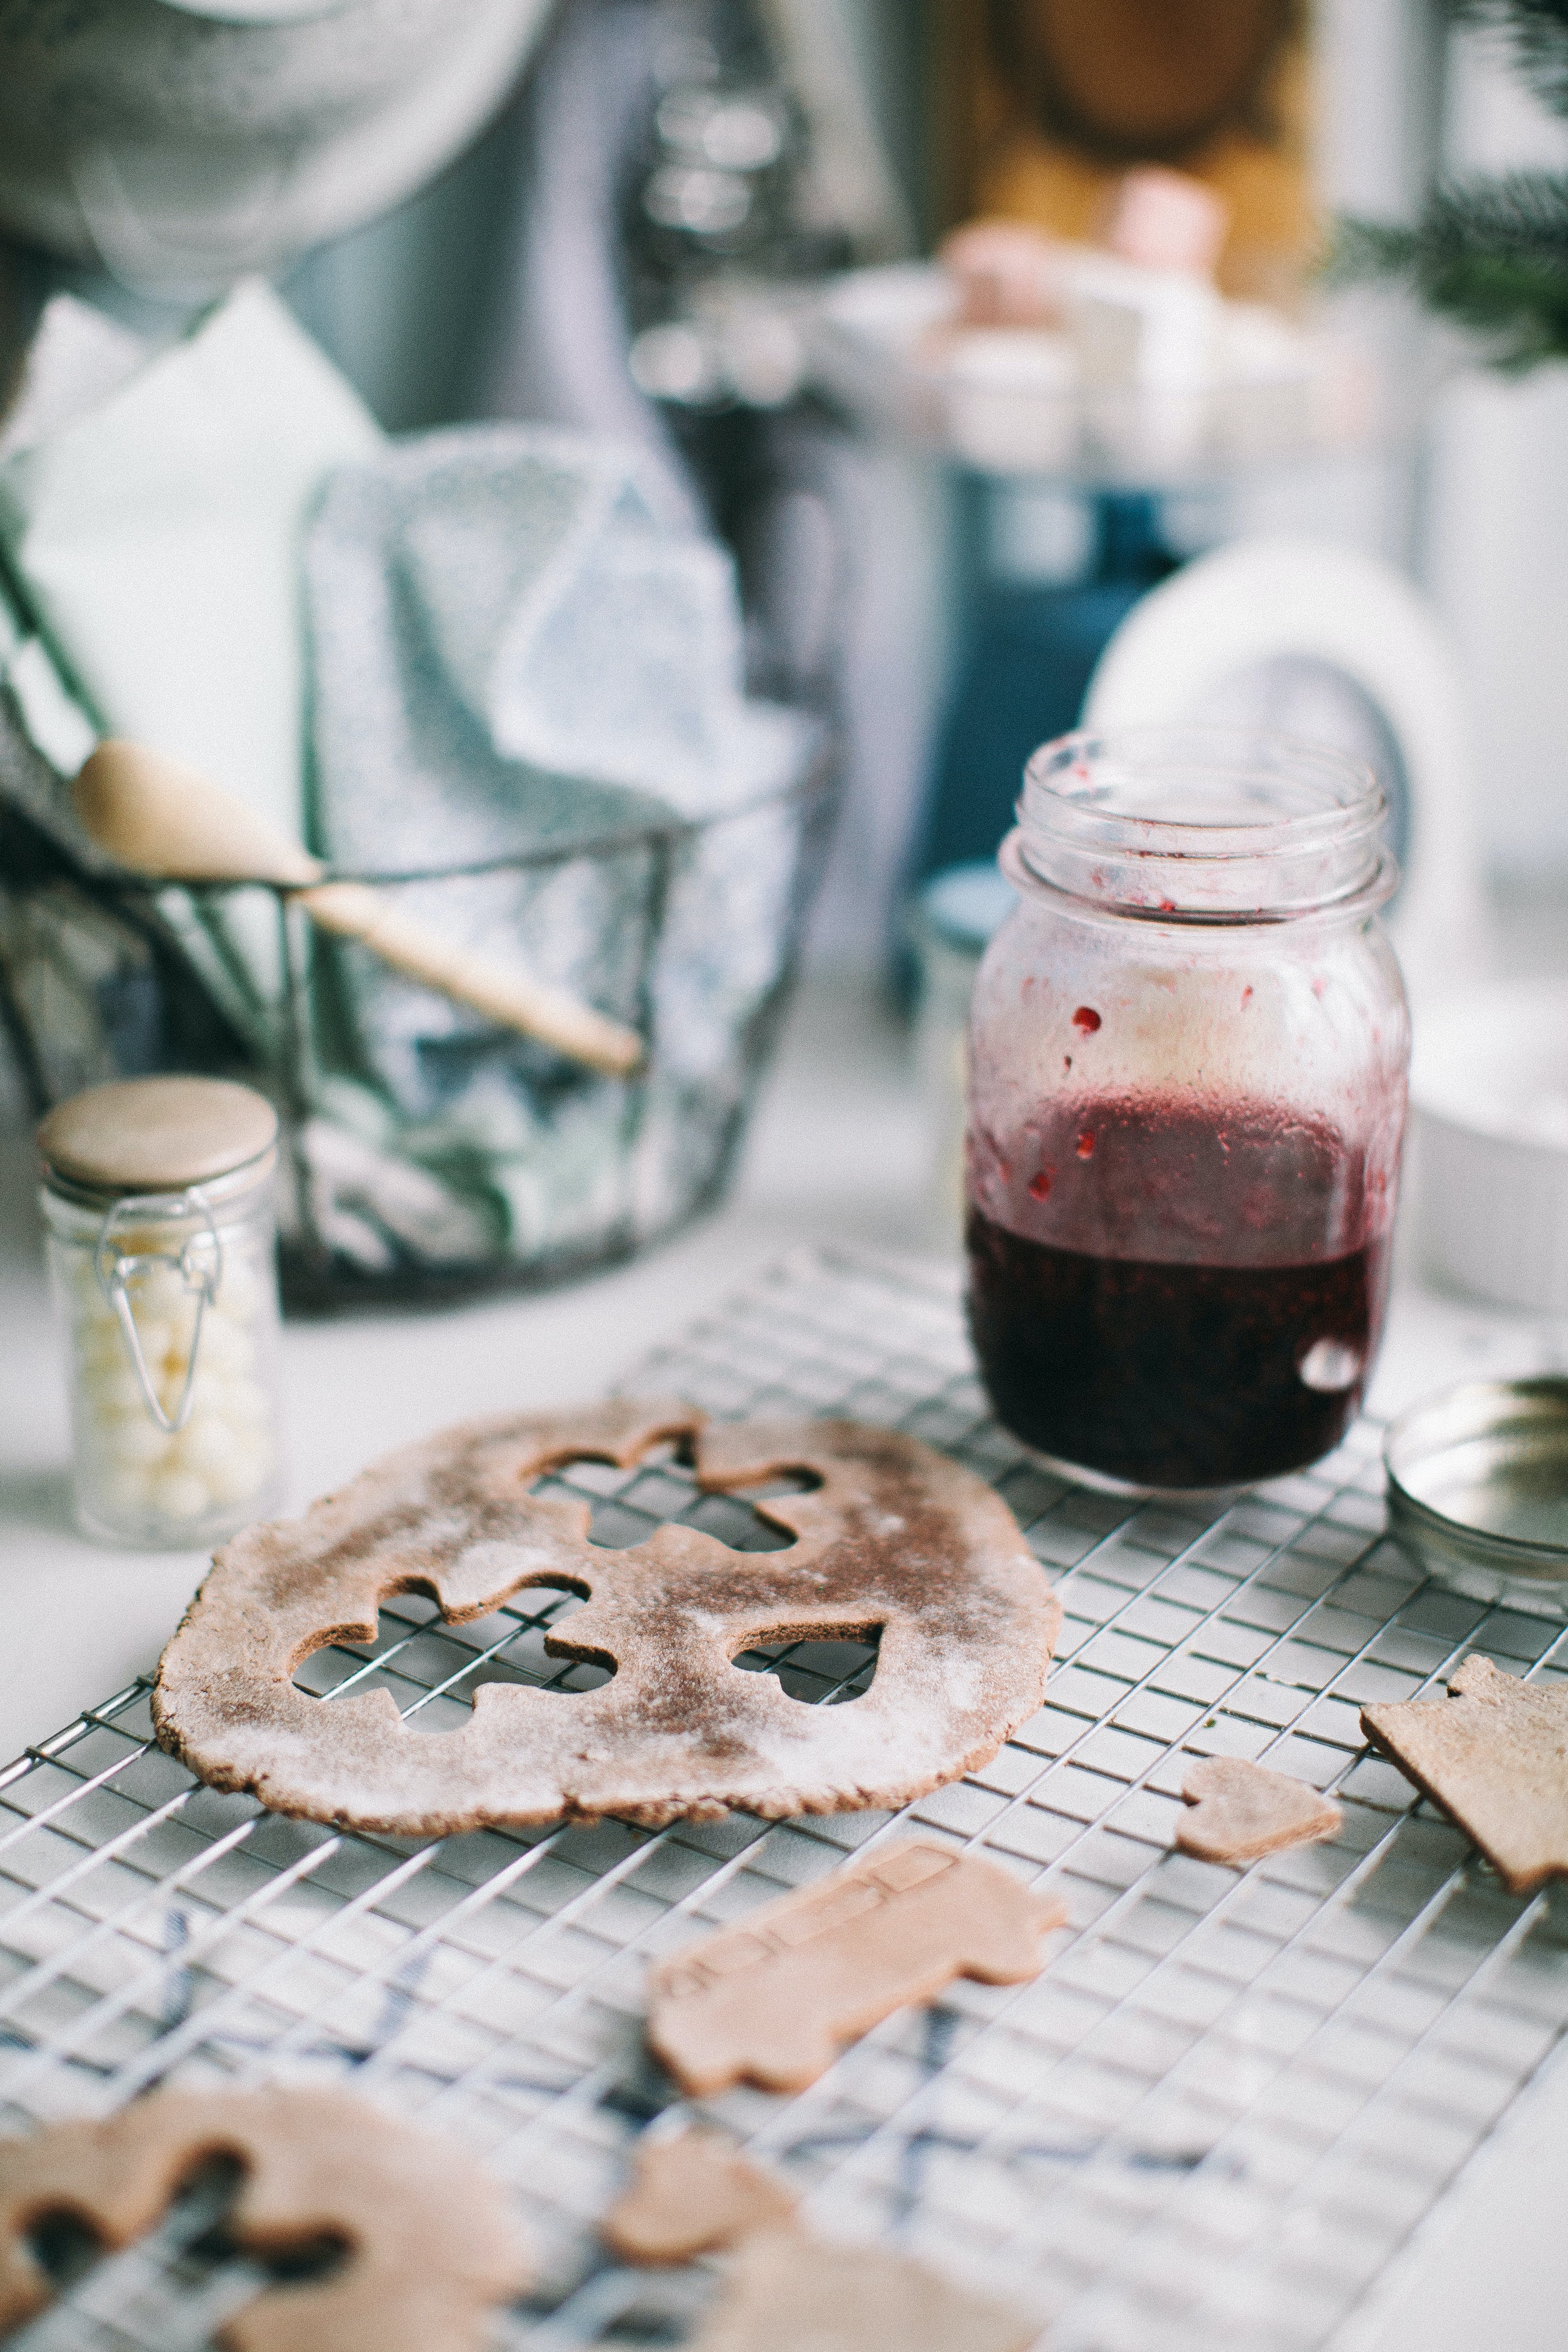 Glass Jar With Red Liquid Next to cookie cut outs